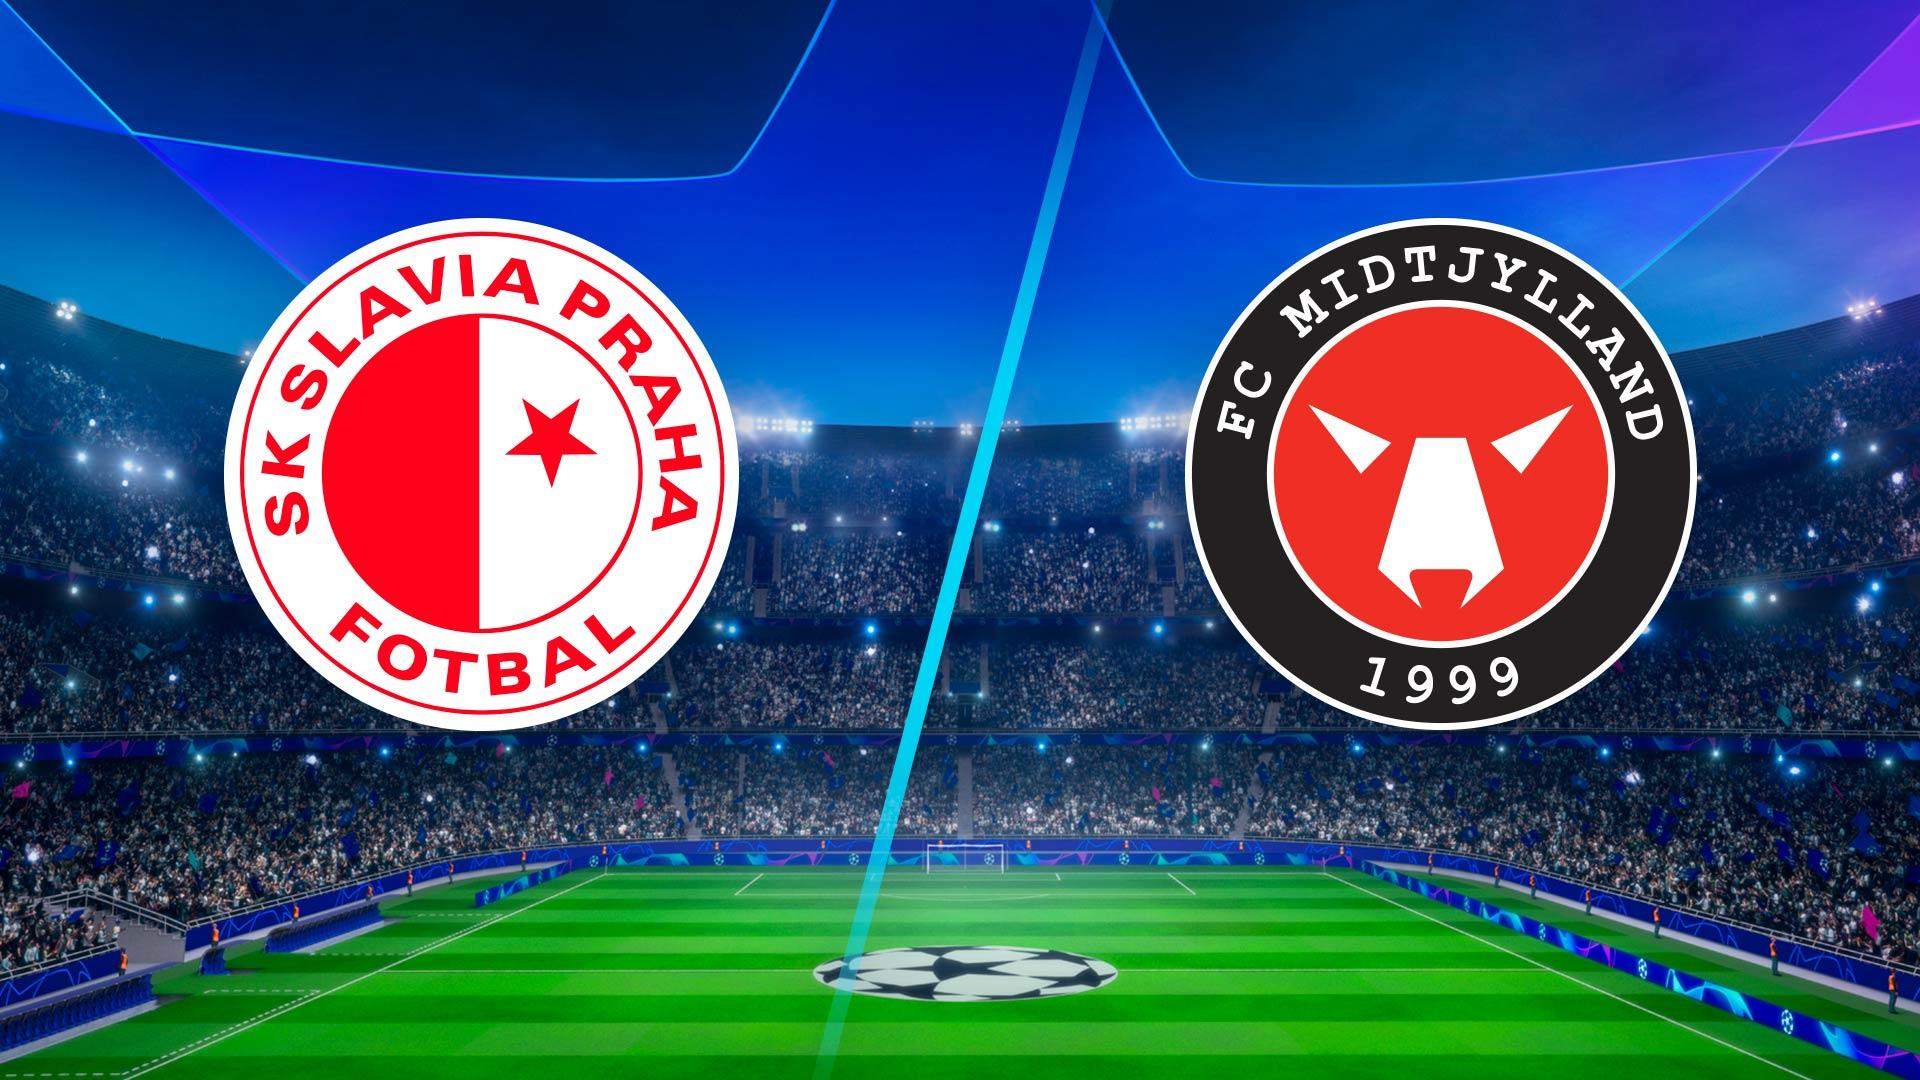 3-ucl-cbssports-thumb-playoff-slavia-midtjylland